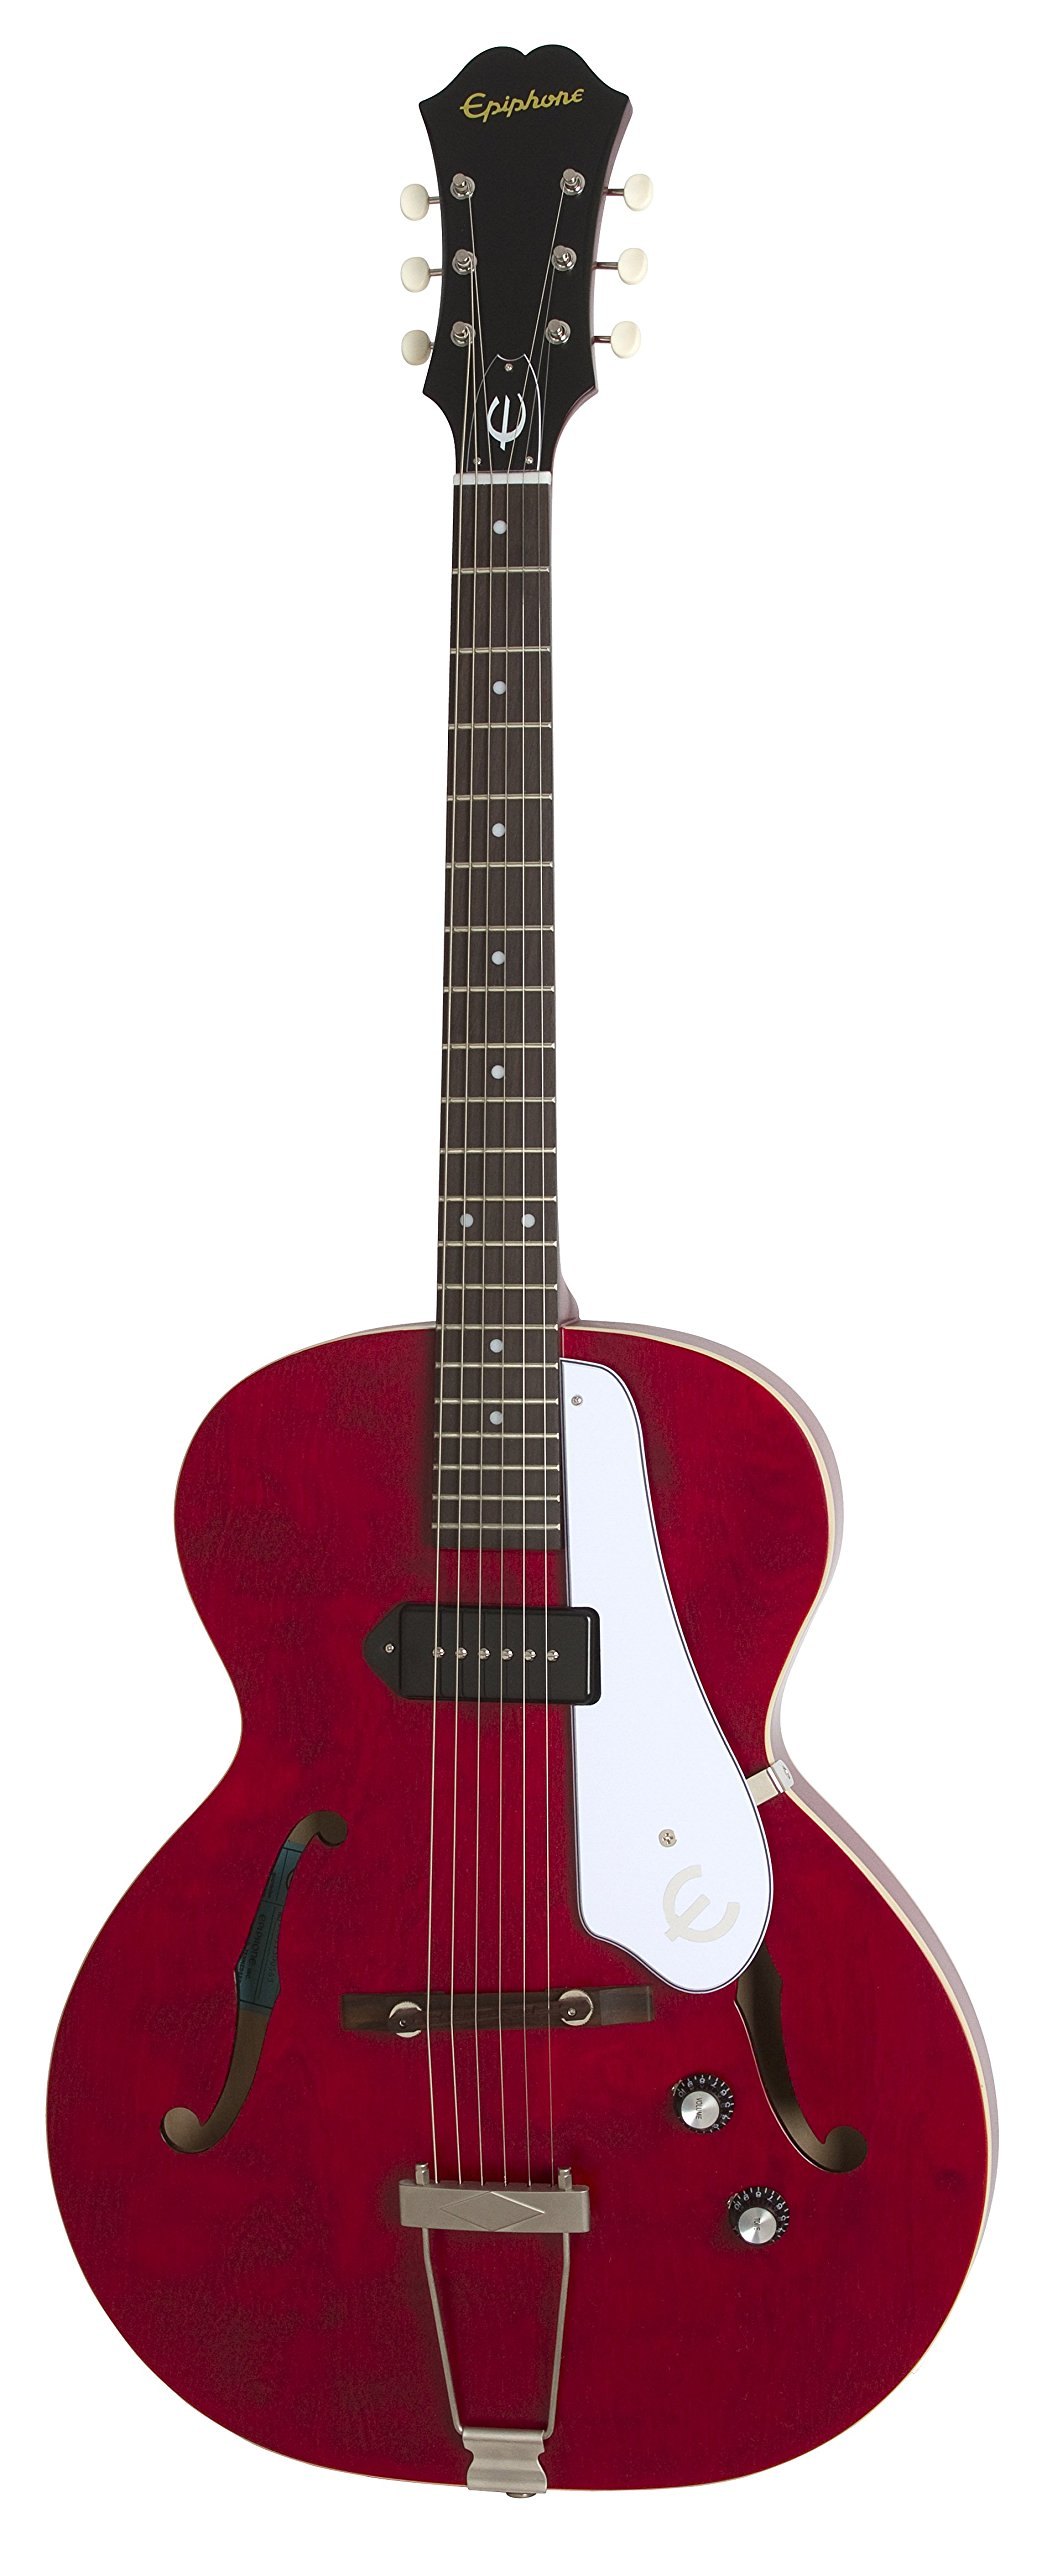 Epiphone ETCNCHNH1 Hollow-Body Electric Guitar, Cherry